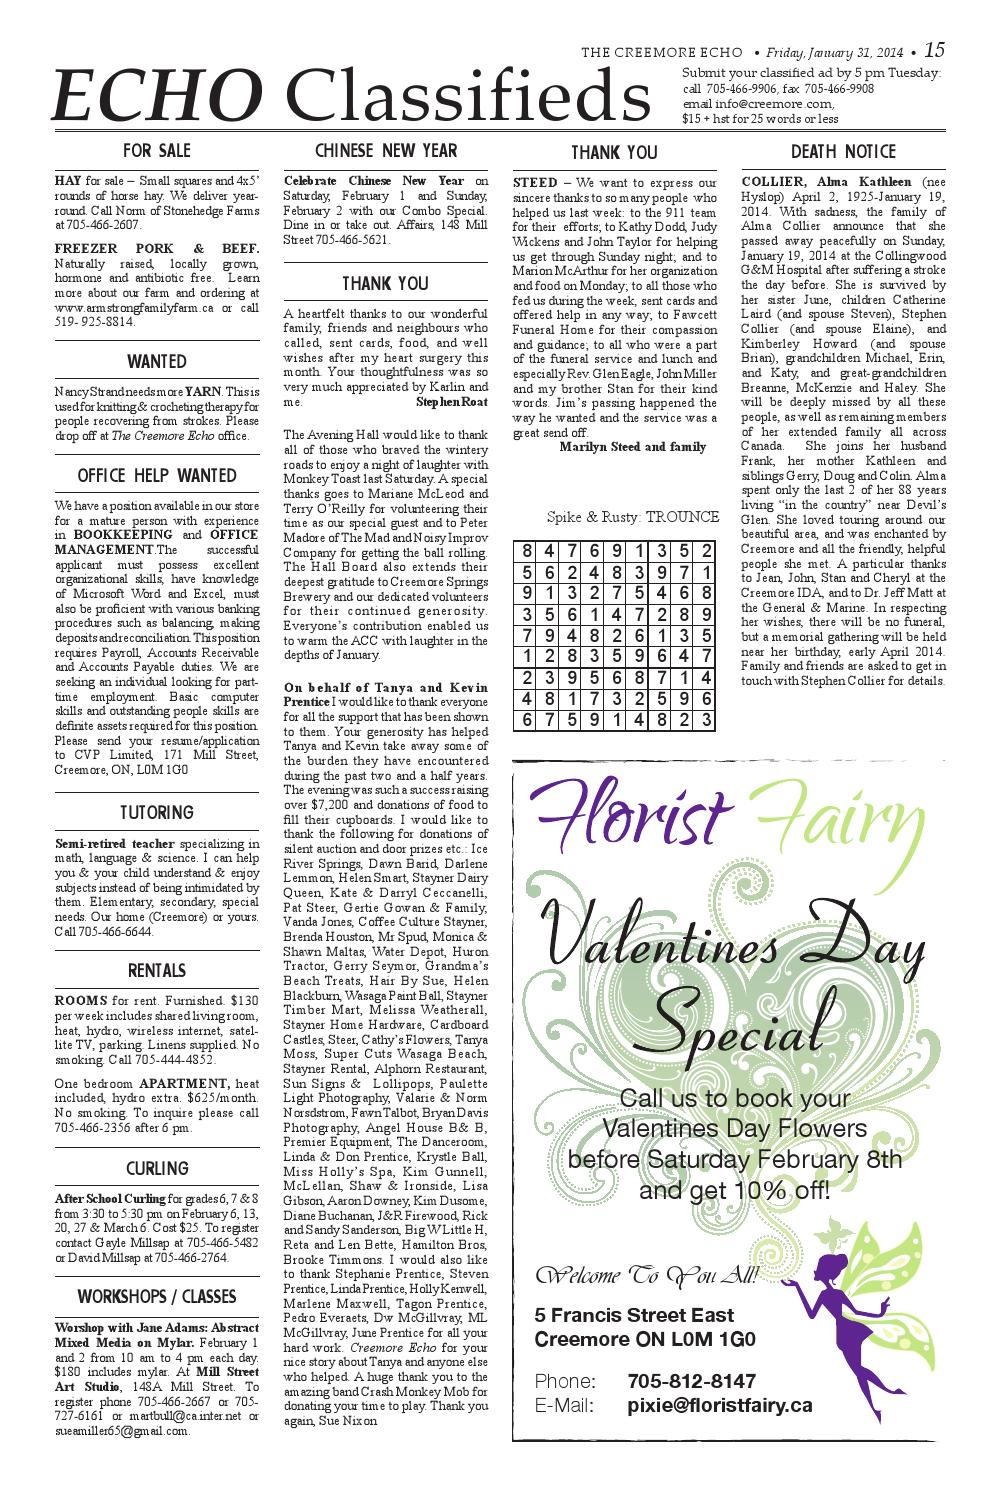 January 31, 2014 classifieds by The Creemore Echo - issuu